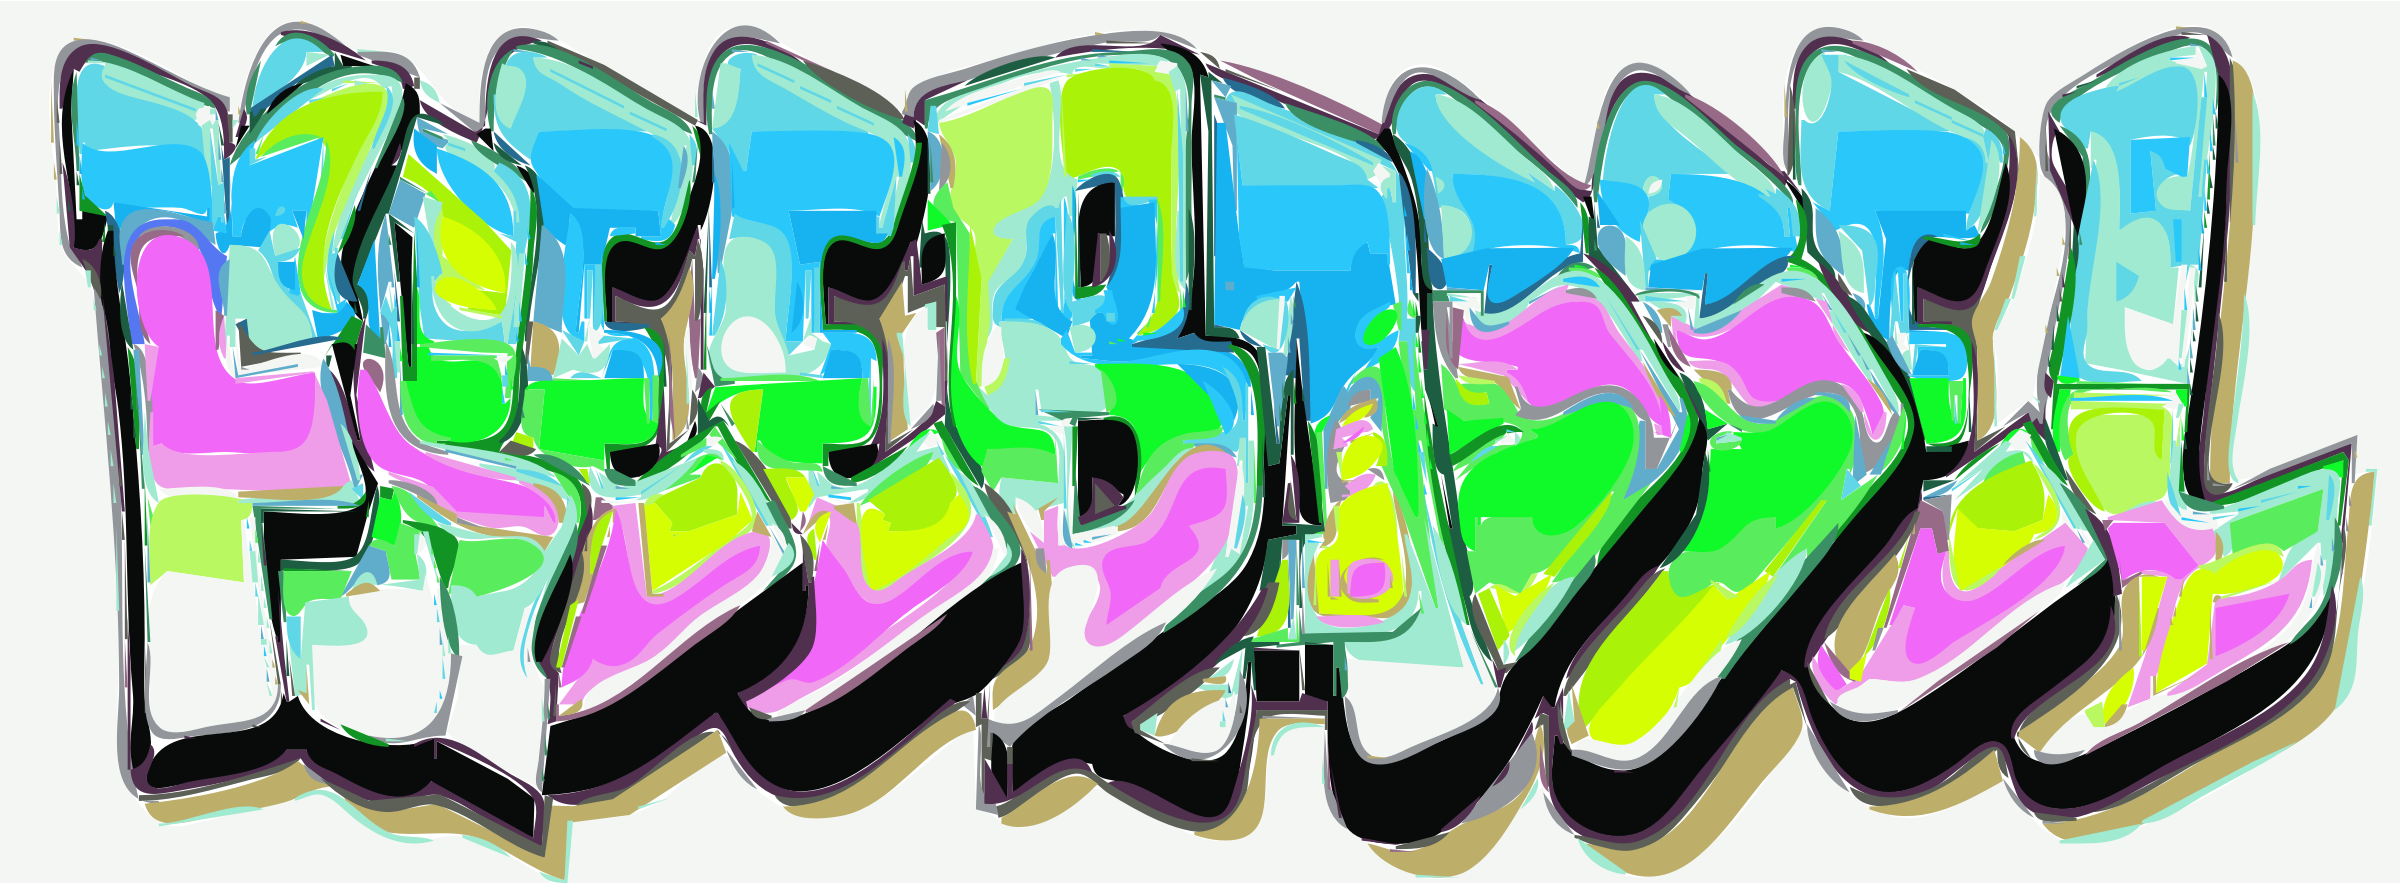 Freebassel Graffiti Text for Day 885 In Living Colour by rejon